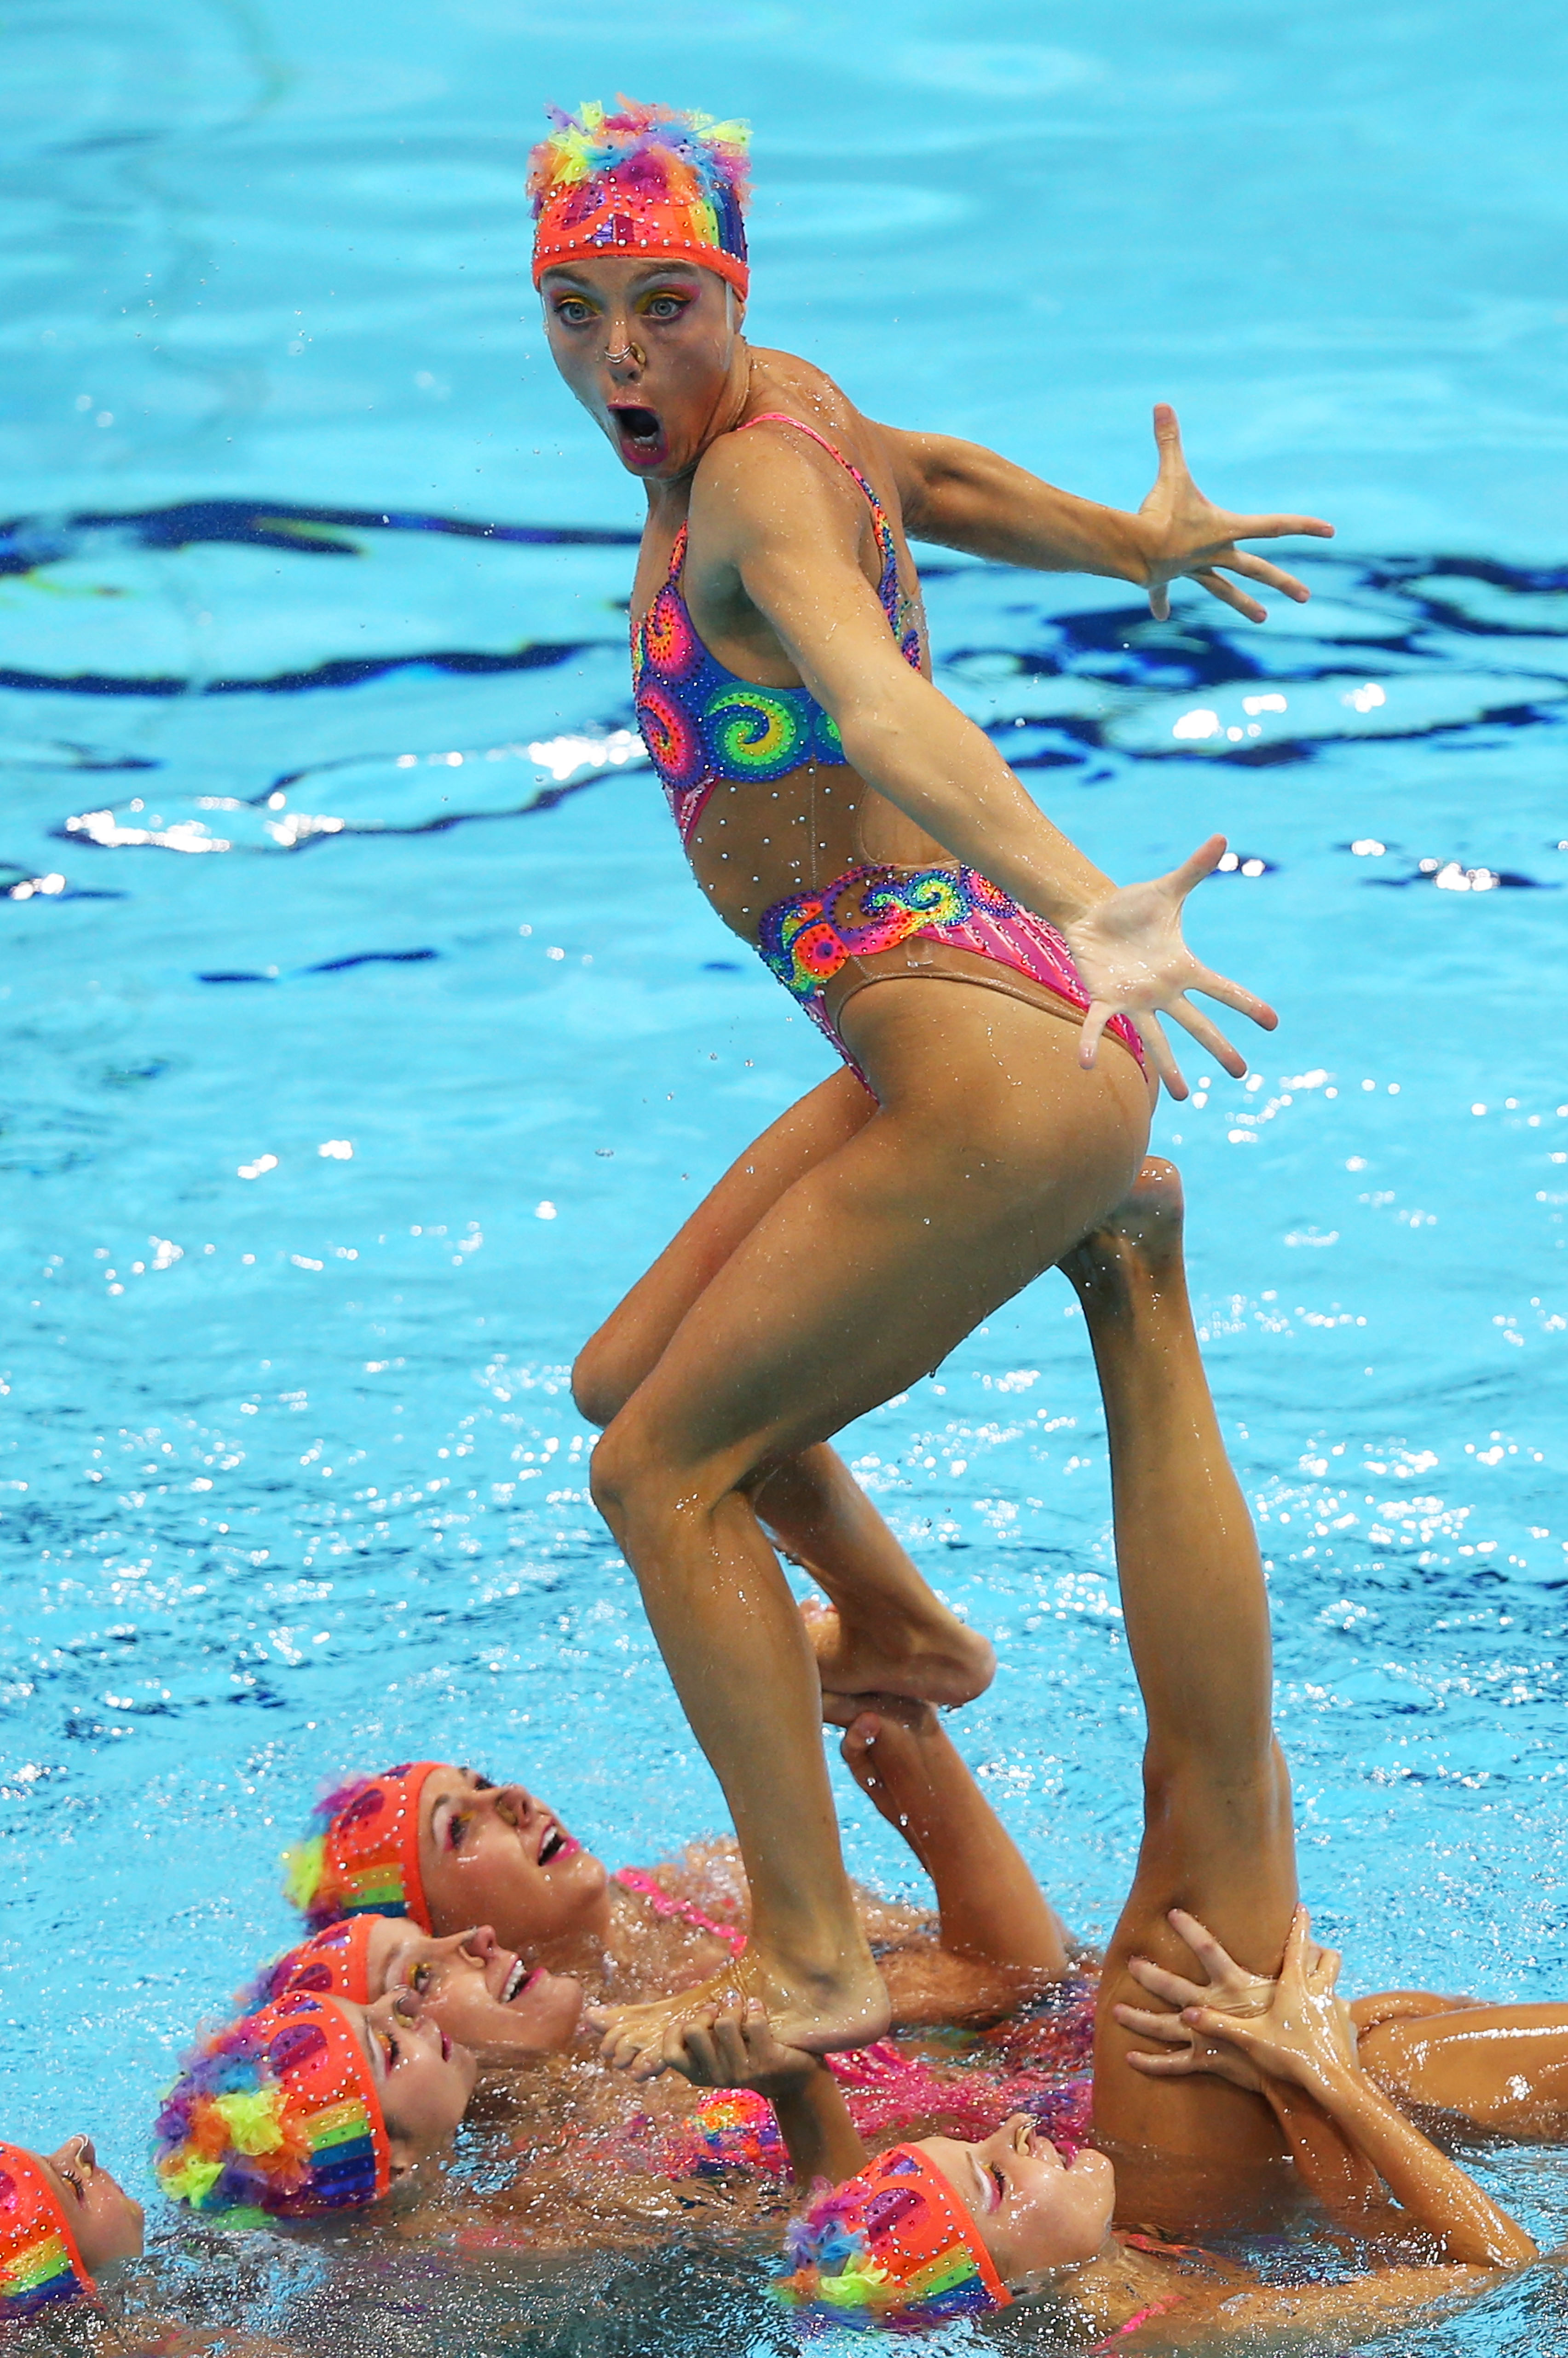 funny synchronised swimming